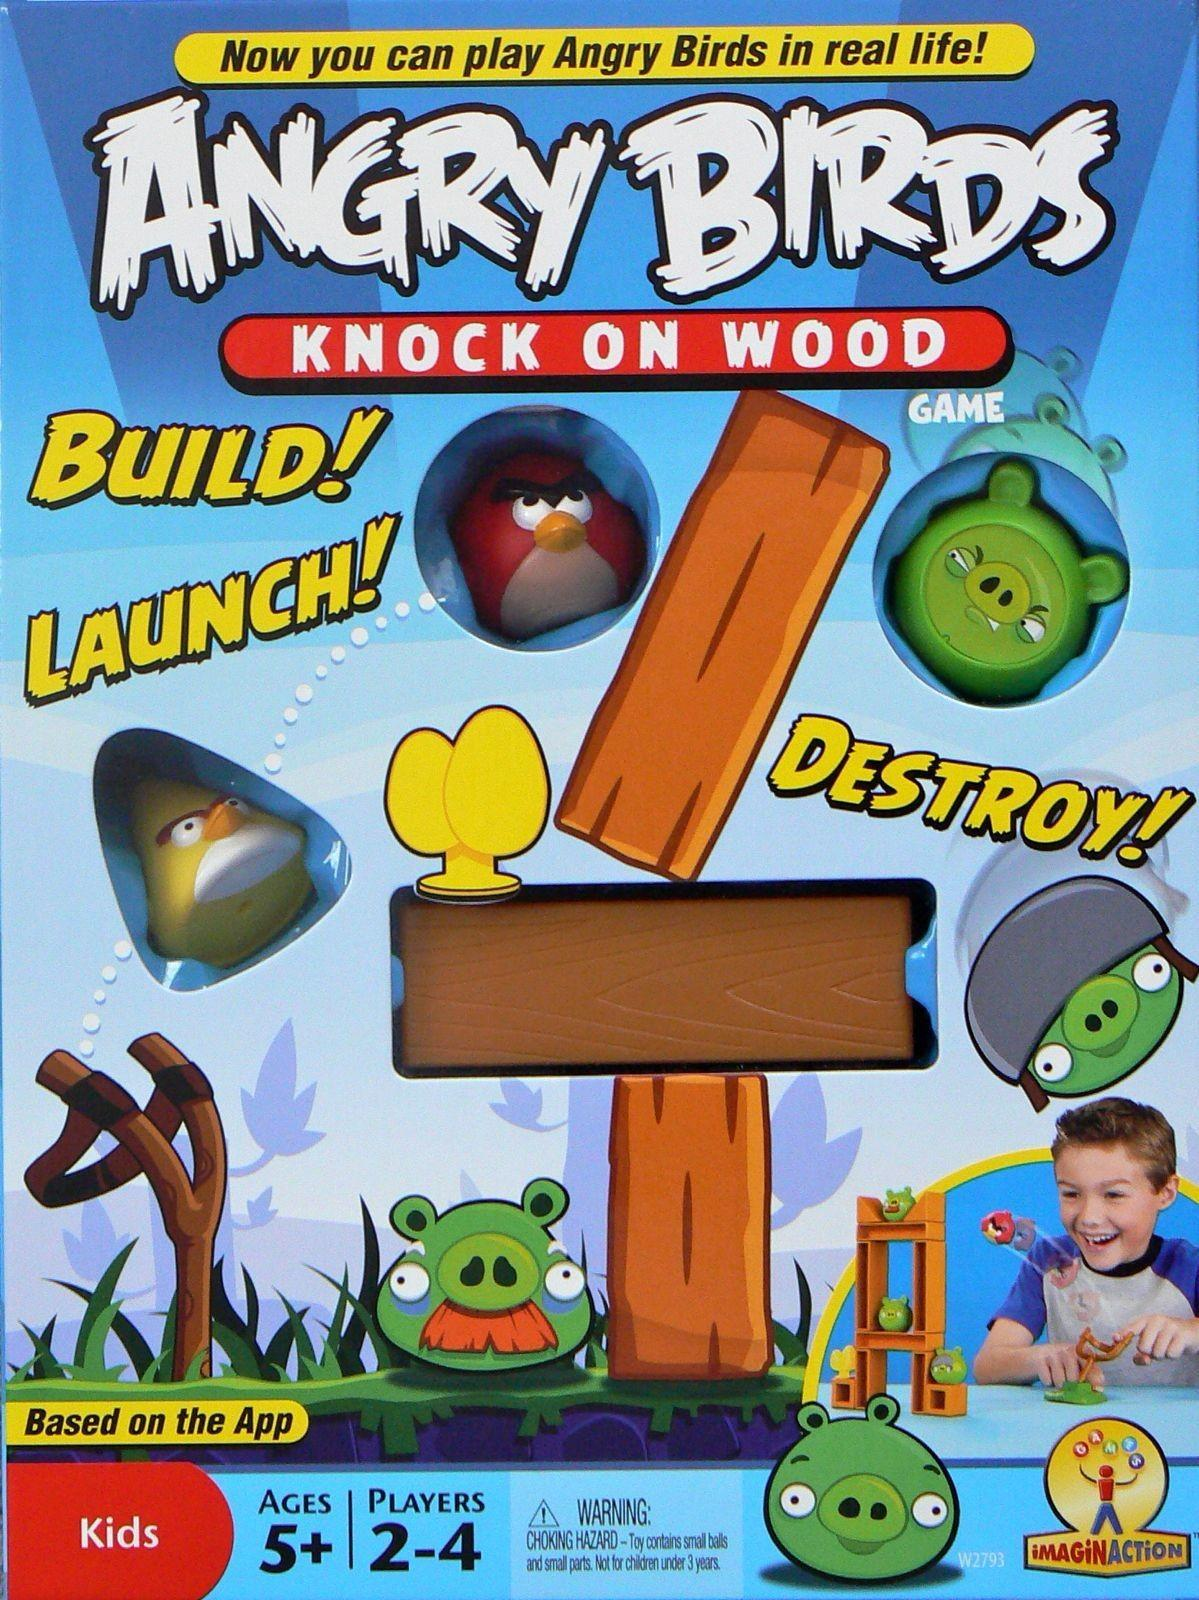 Angry Birds Board Game Imgkid Kid